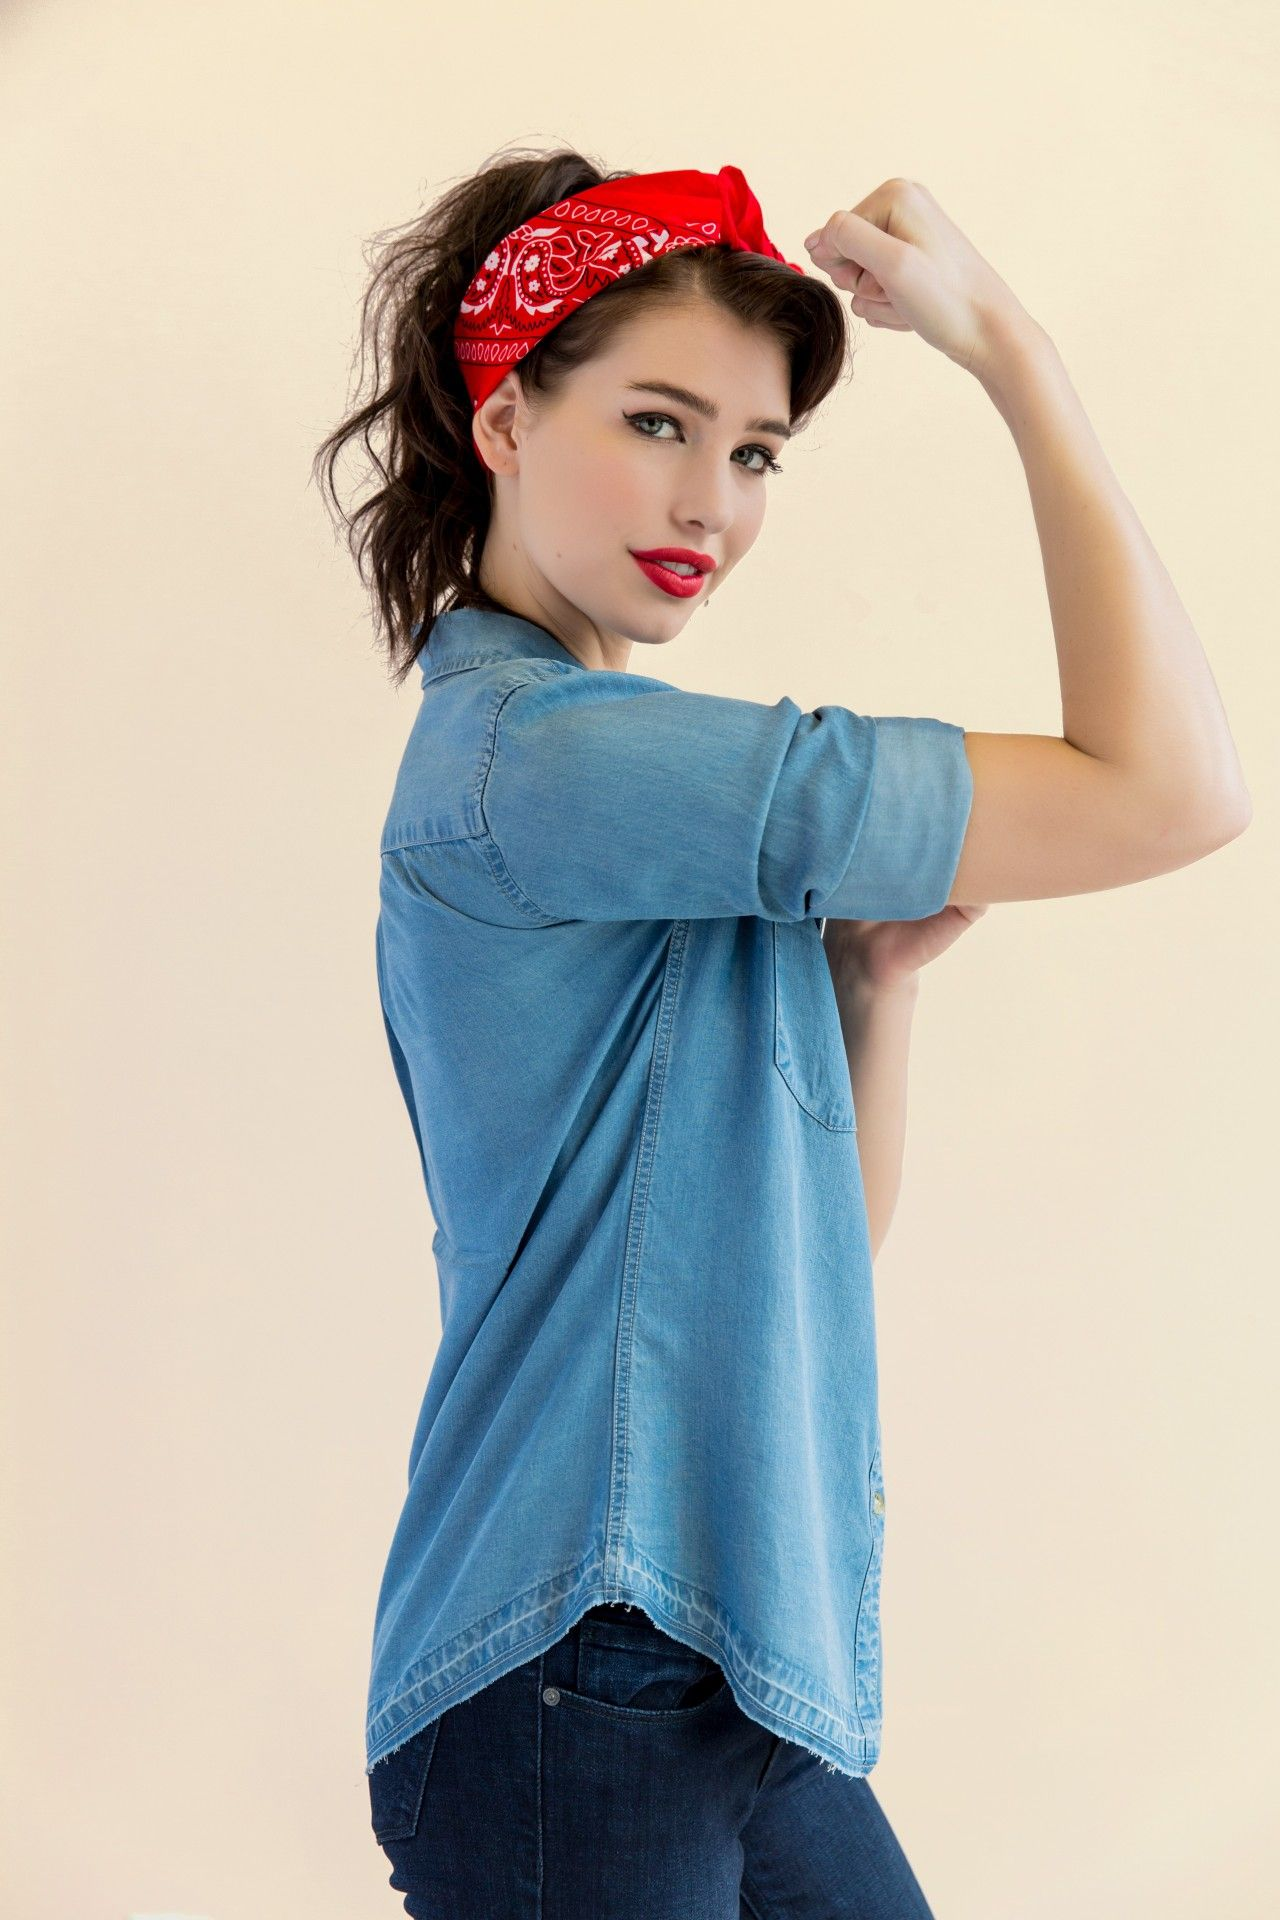 diy rosie the riveter costume for teen